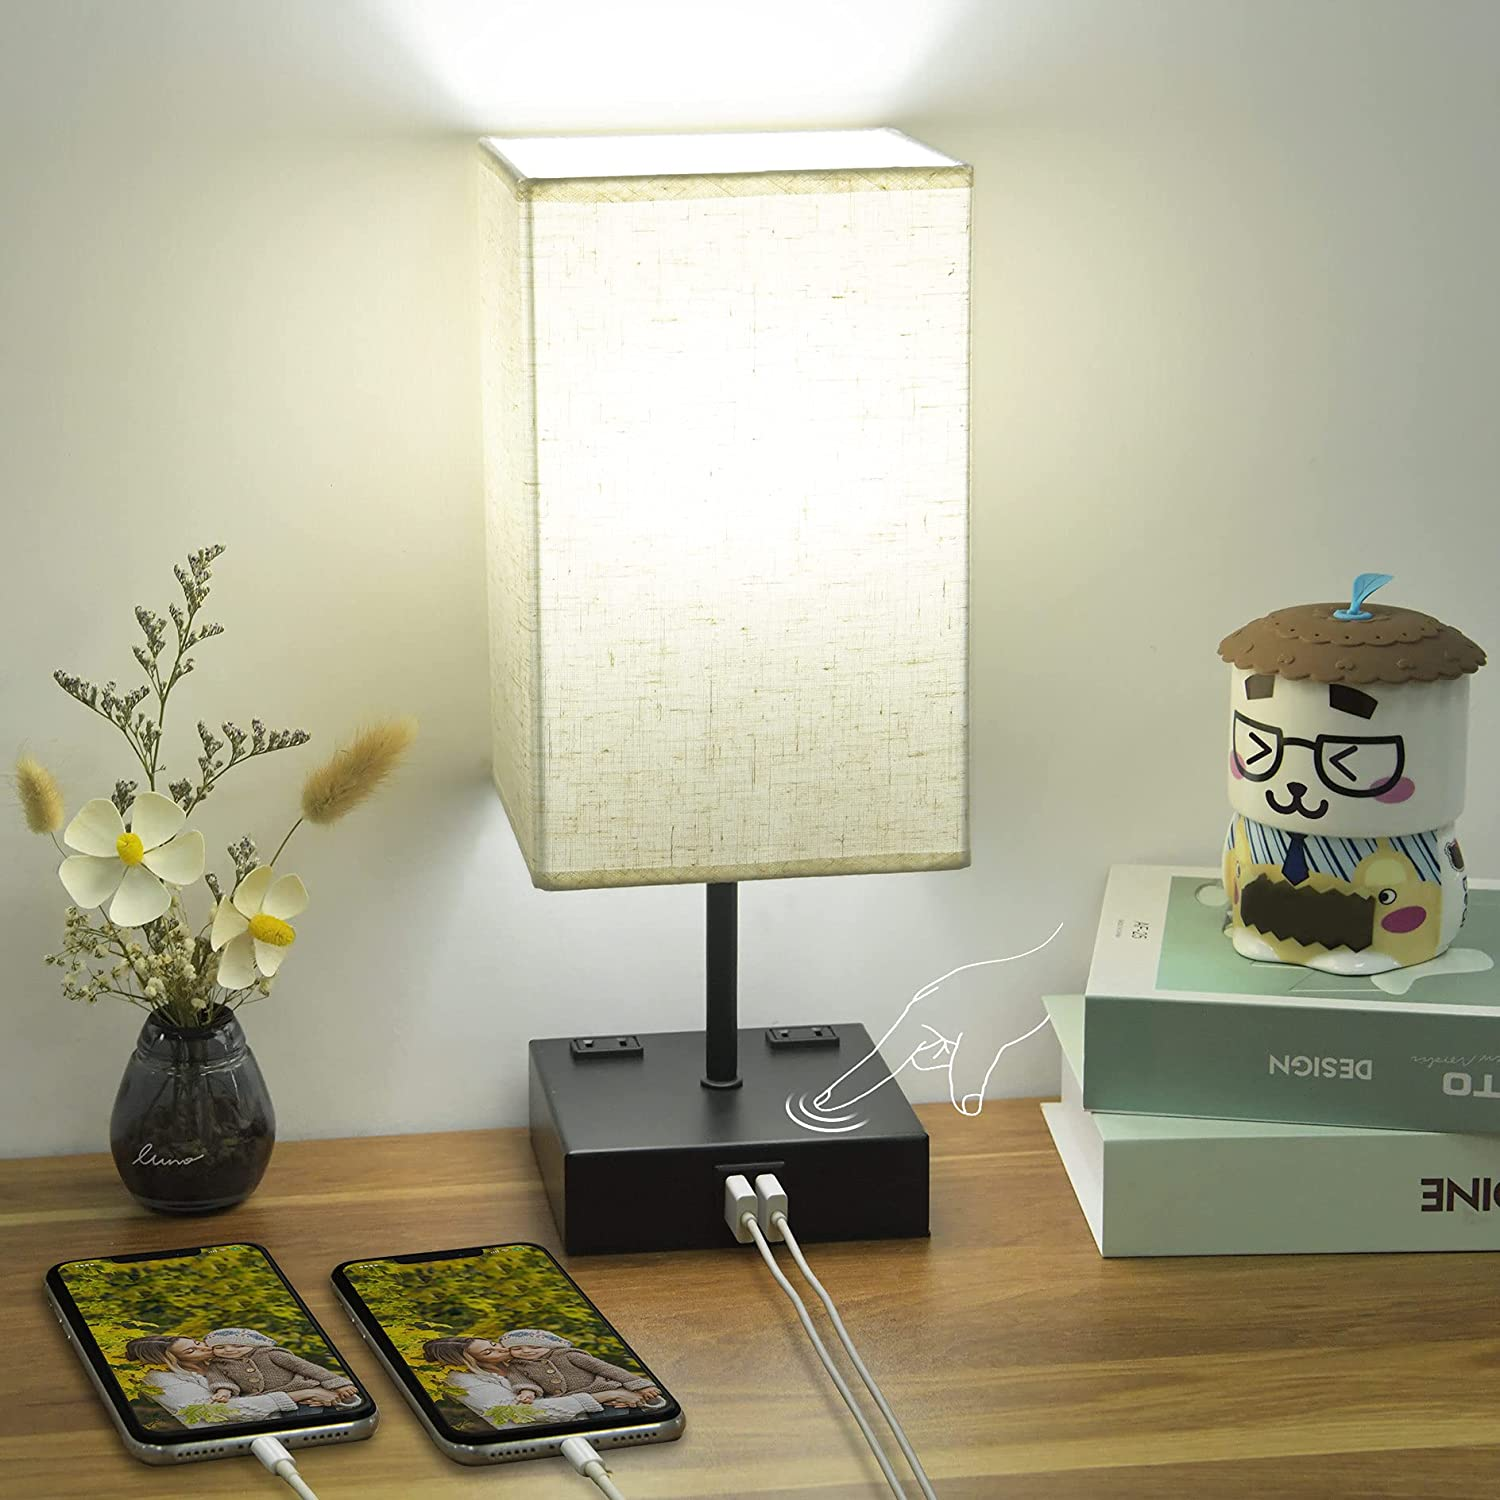 3-Way Dimmable Touch Sales for sale Selling rankings Control Bedside Lamp Cotanic Table